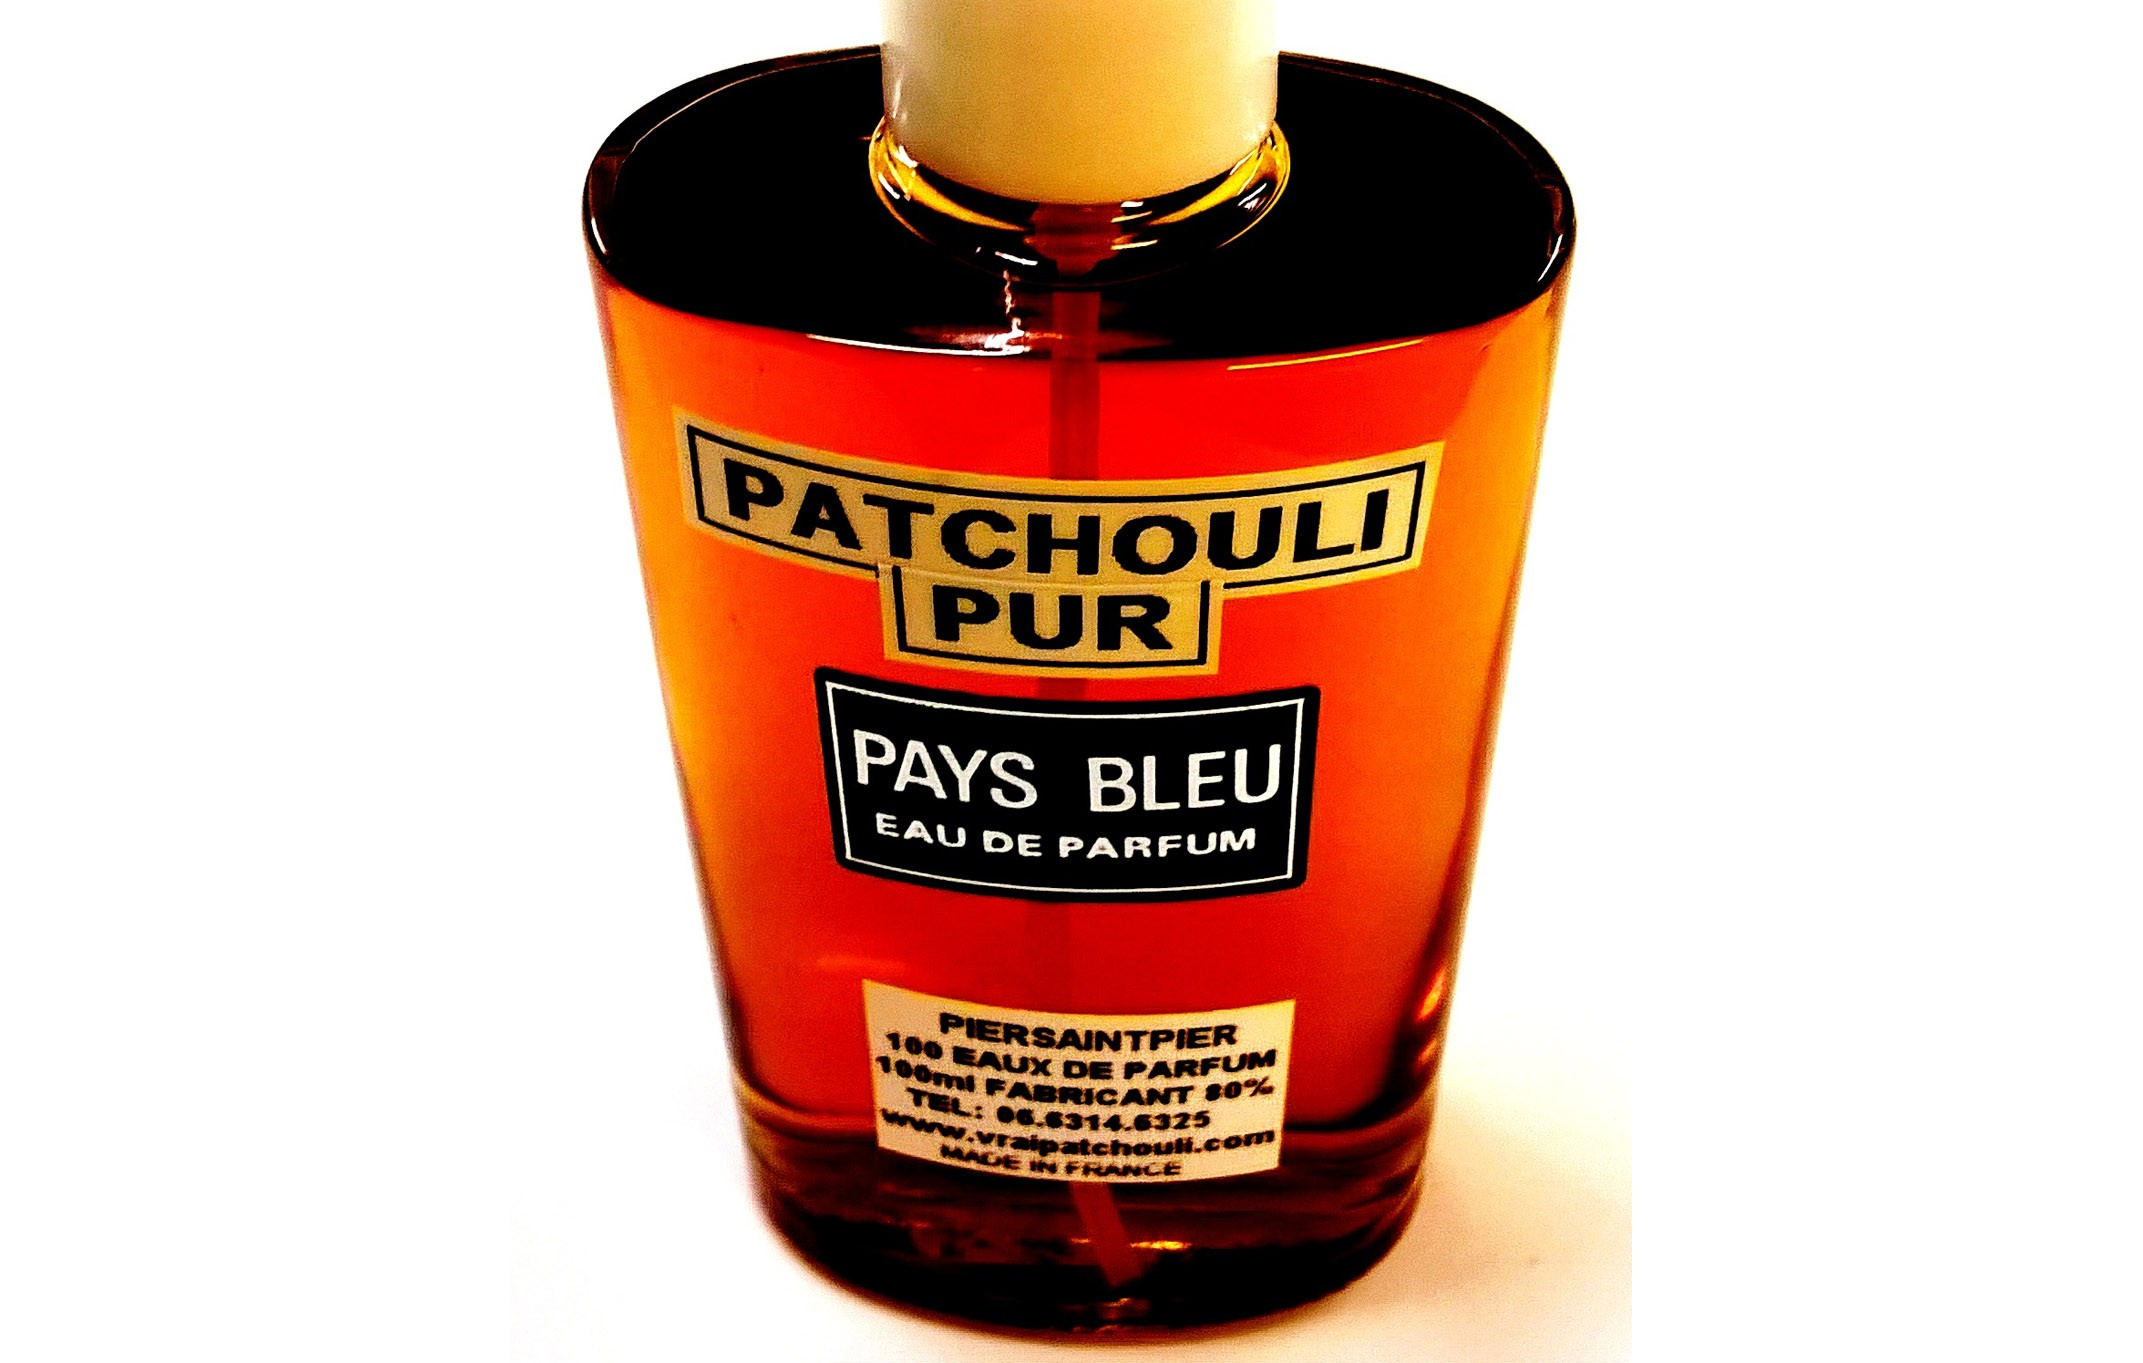 PATCHOULI PUR (Flacon Simple / Sans Boite)